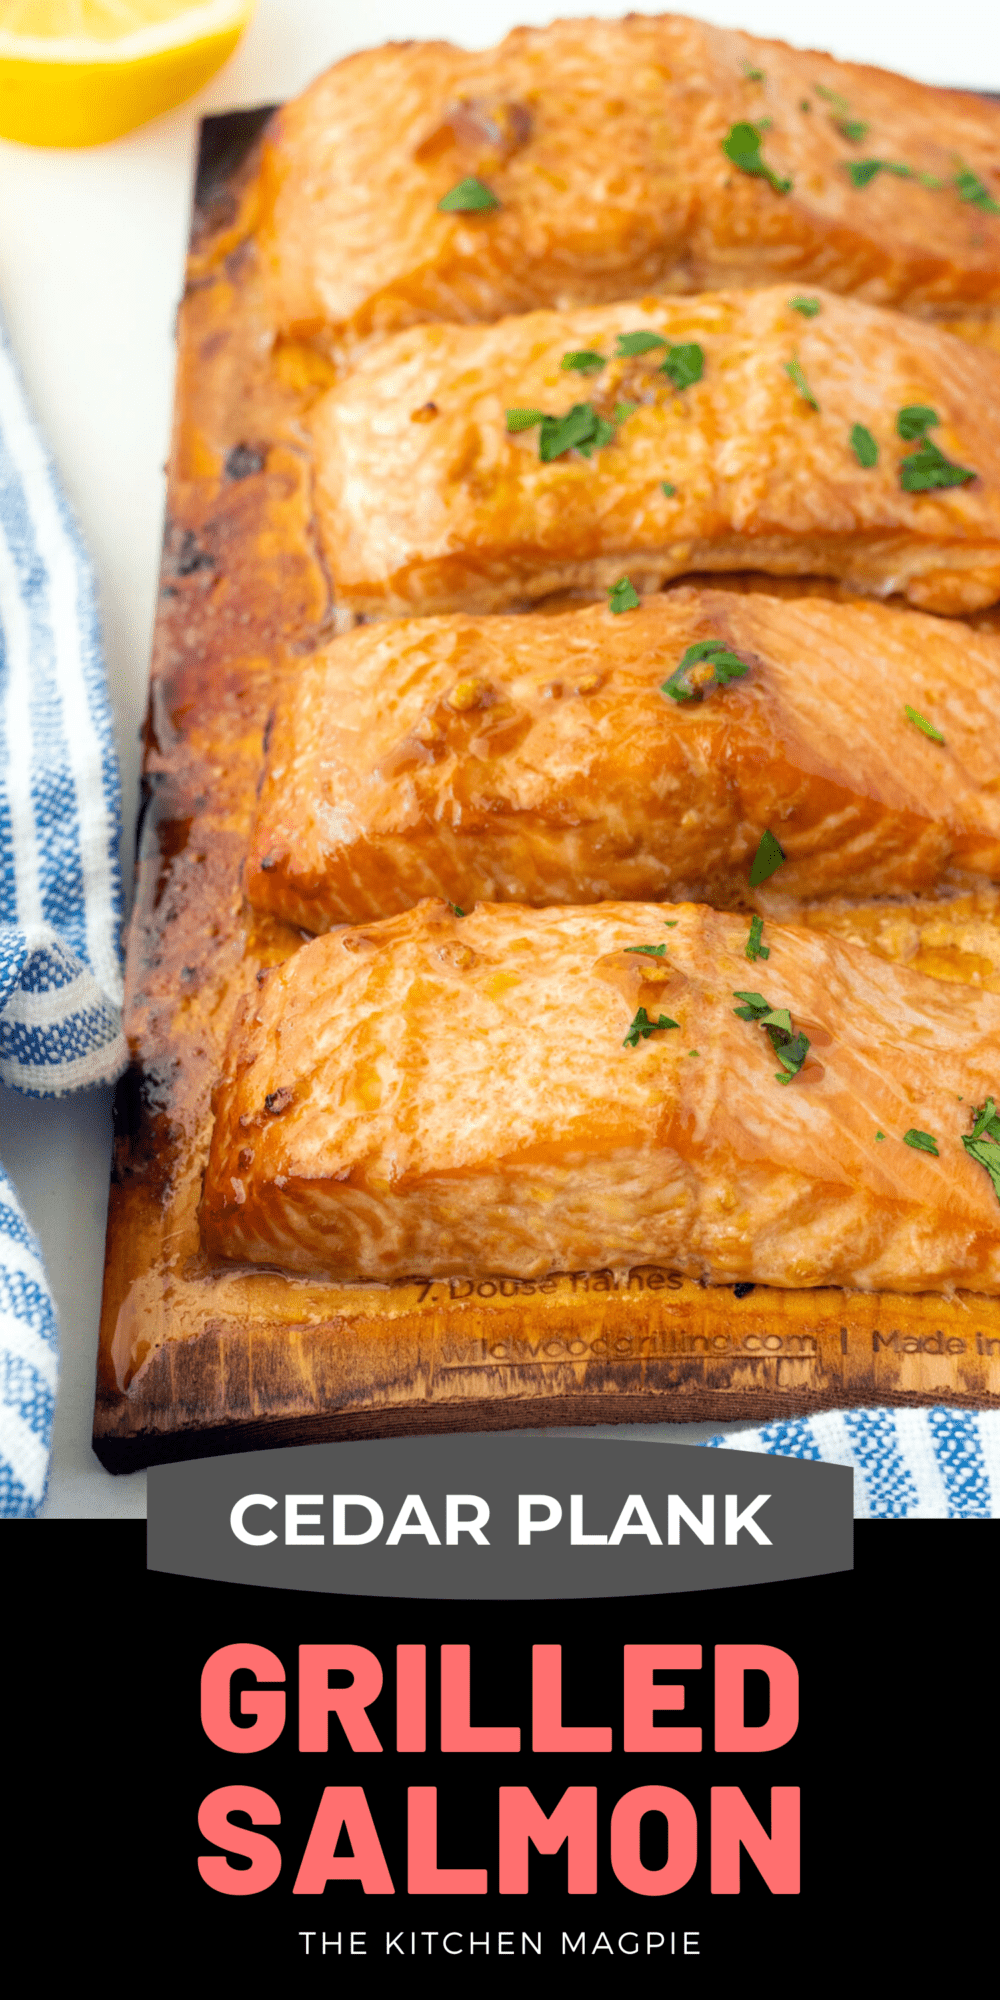 How to cook marinated salmon fillets to smokey, flakey perfection on cedar planks on your grill or BBQ. Perfect grilled salmon!